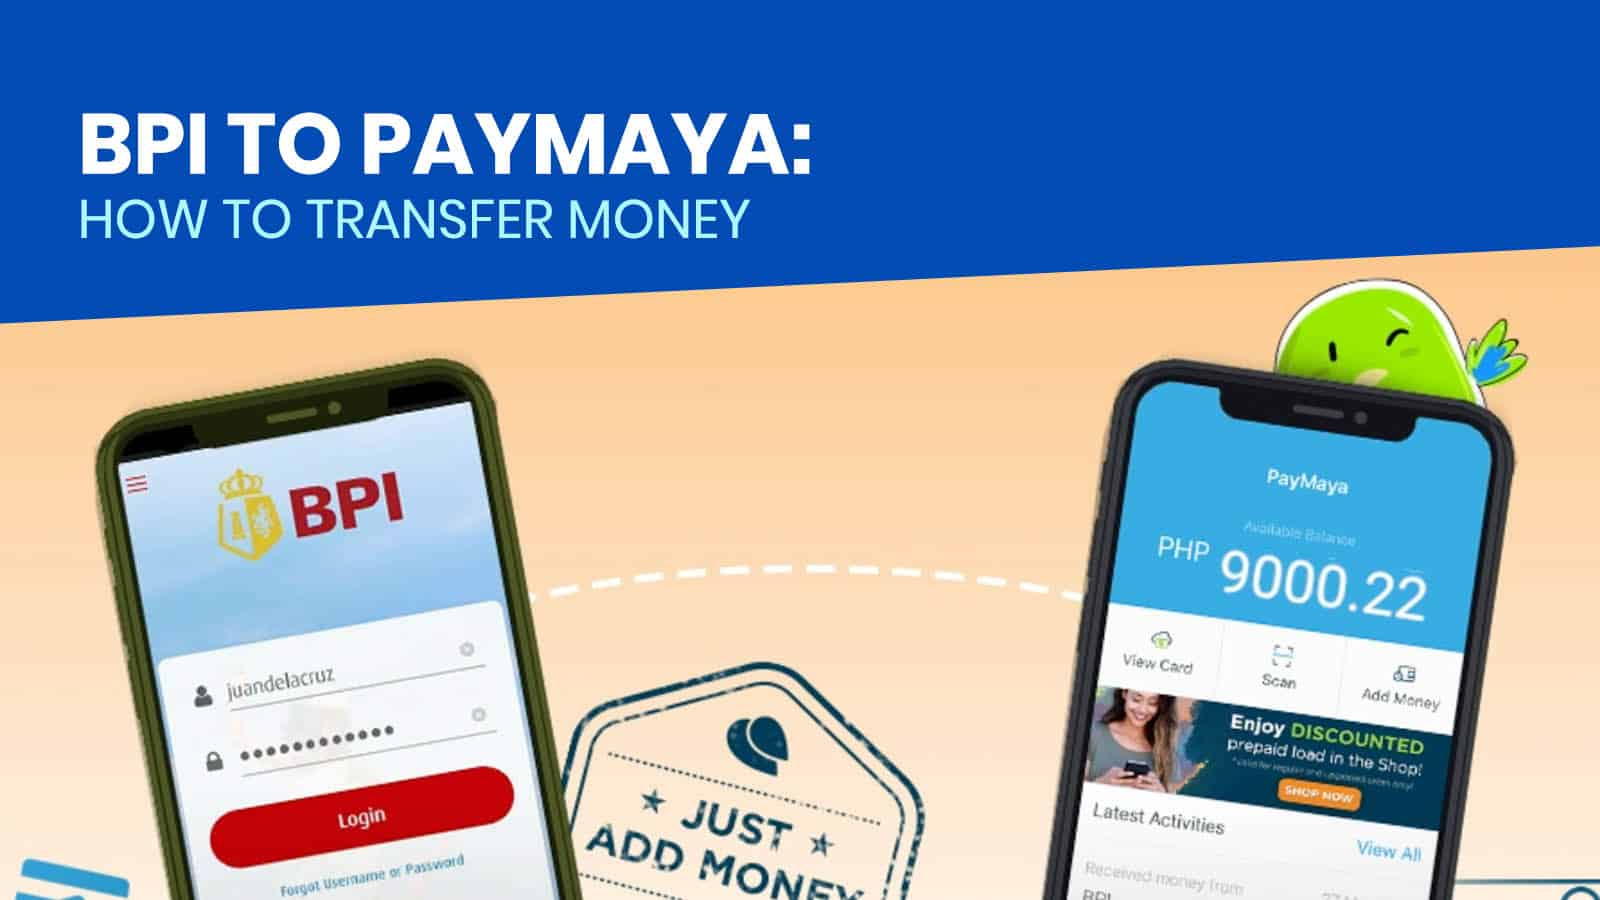 BPI TO PAYMAYA: How to Transfer Money via BPI App